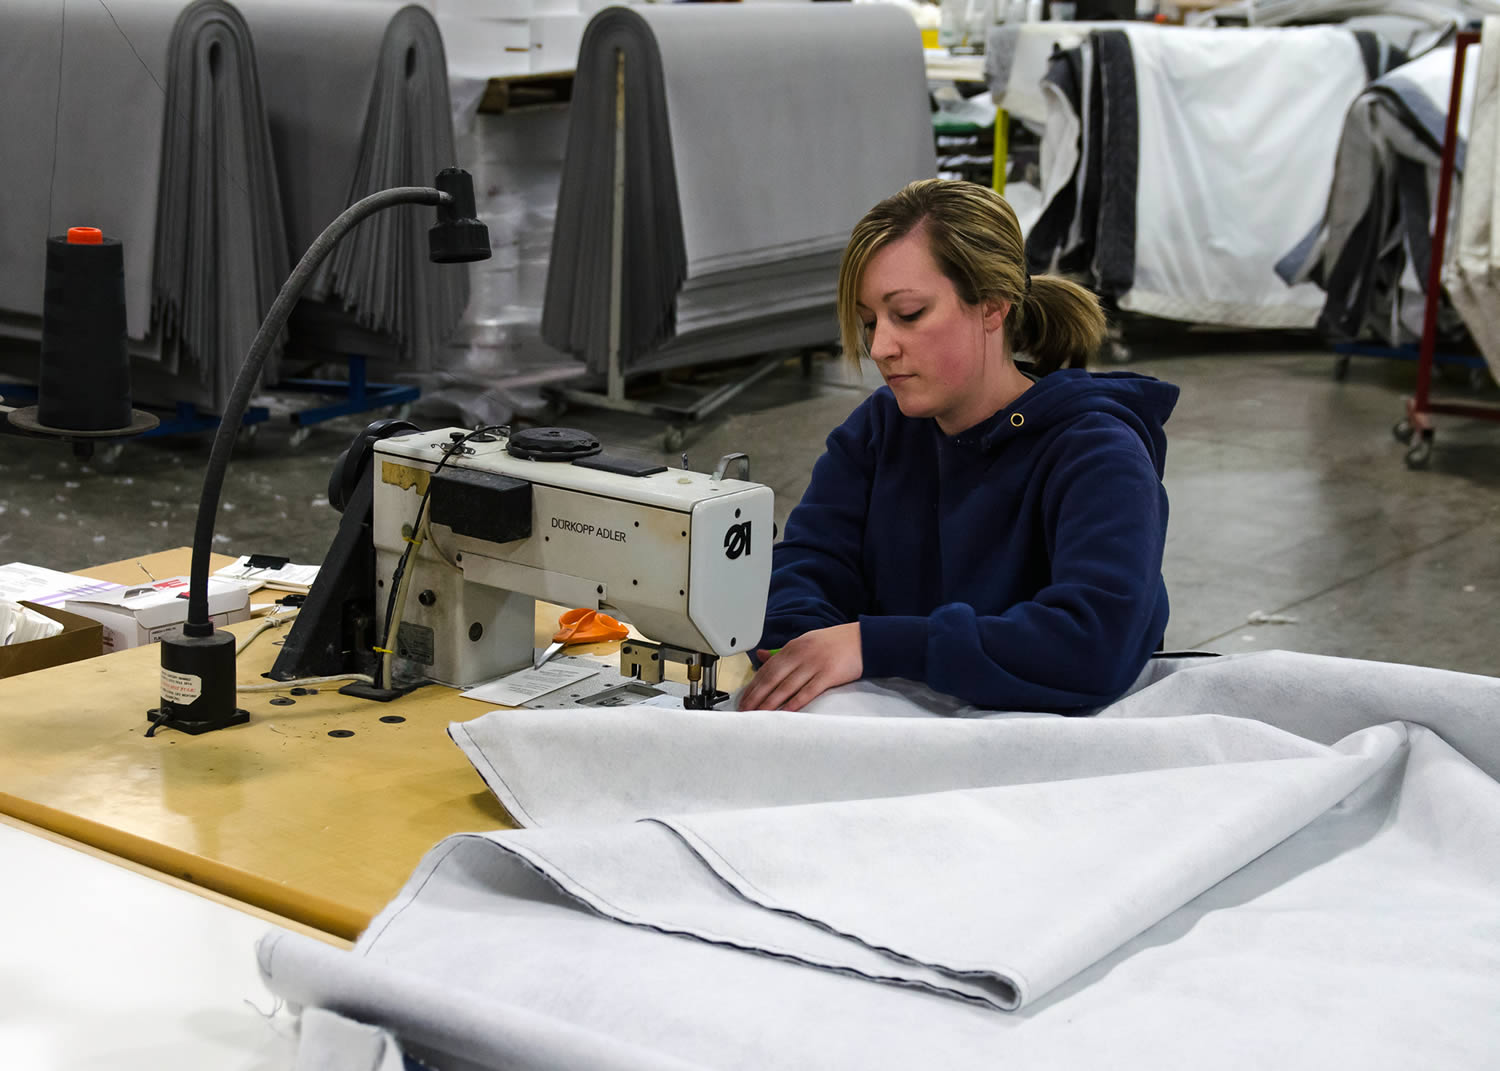 Each Fin Mattress is HANDCRAFTED and custom made to order in the USA